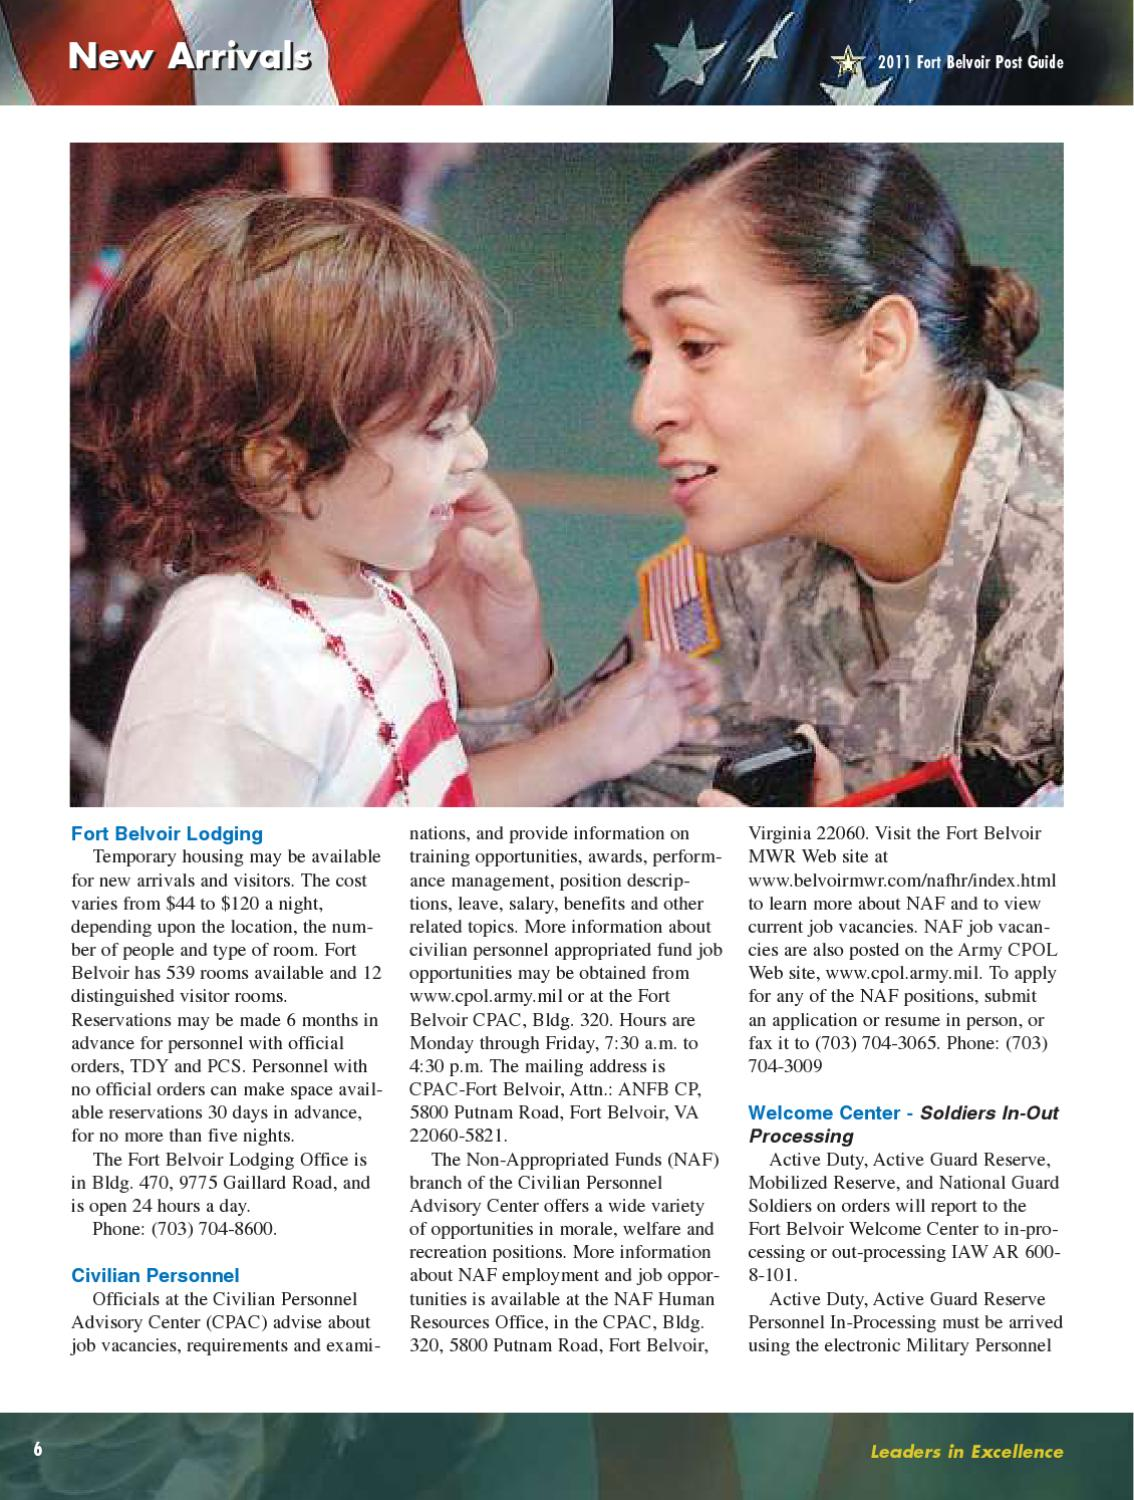 Fort Belvoir Post Guide & Directory - 2011 by Fort Belvoir DFMWR - issuu